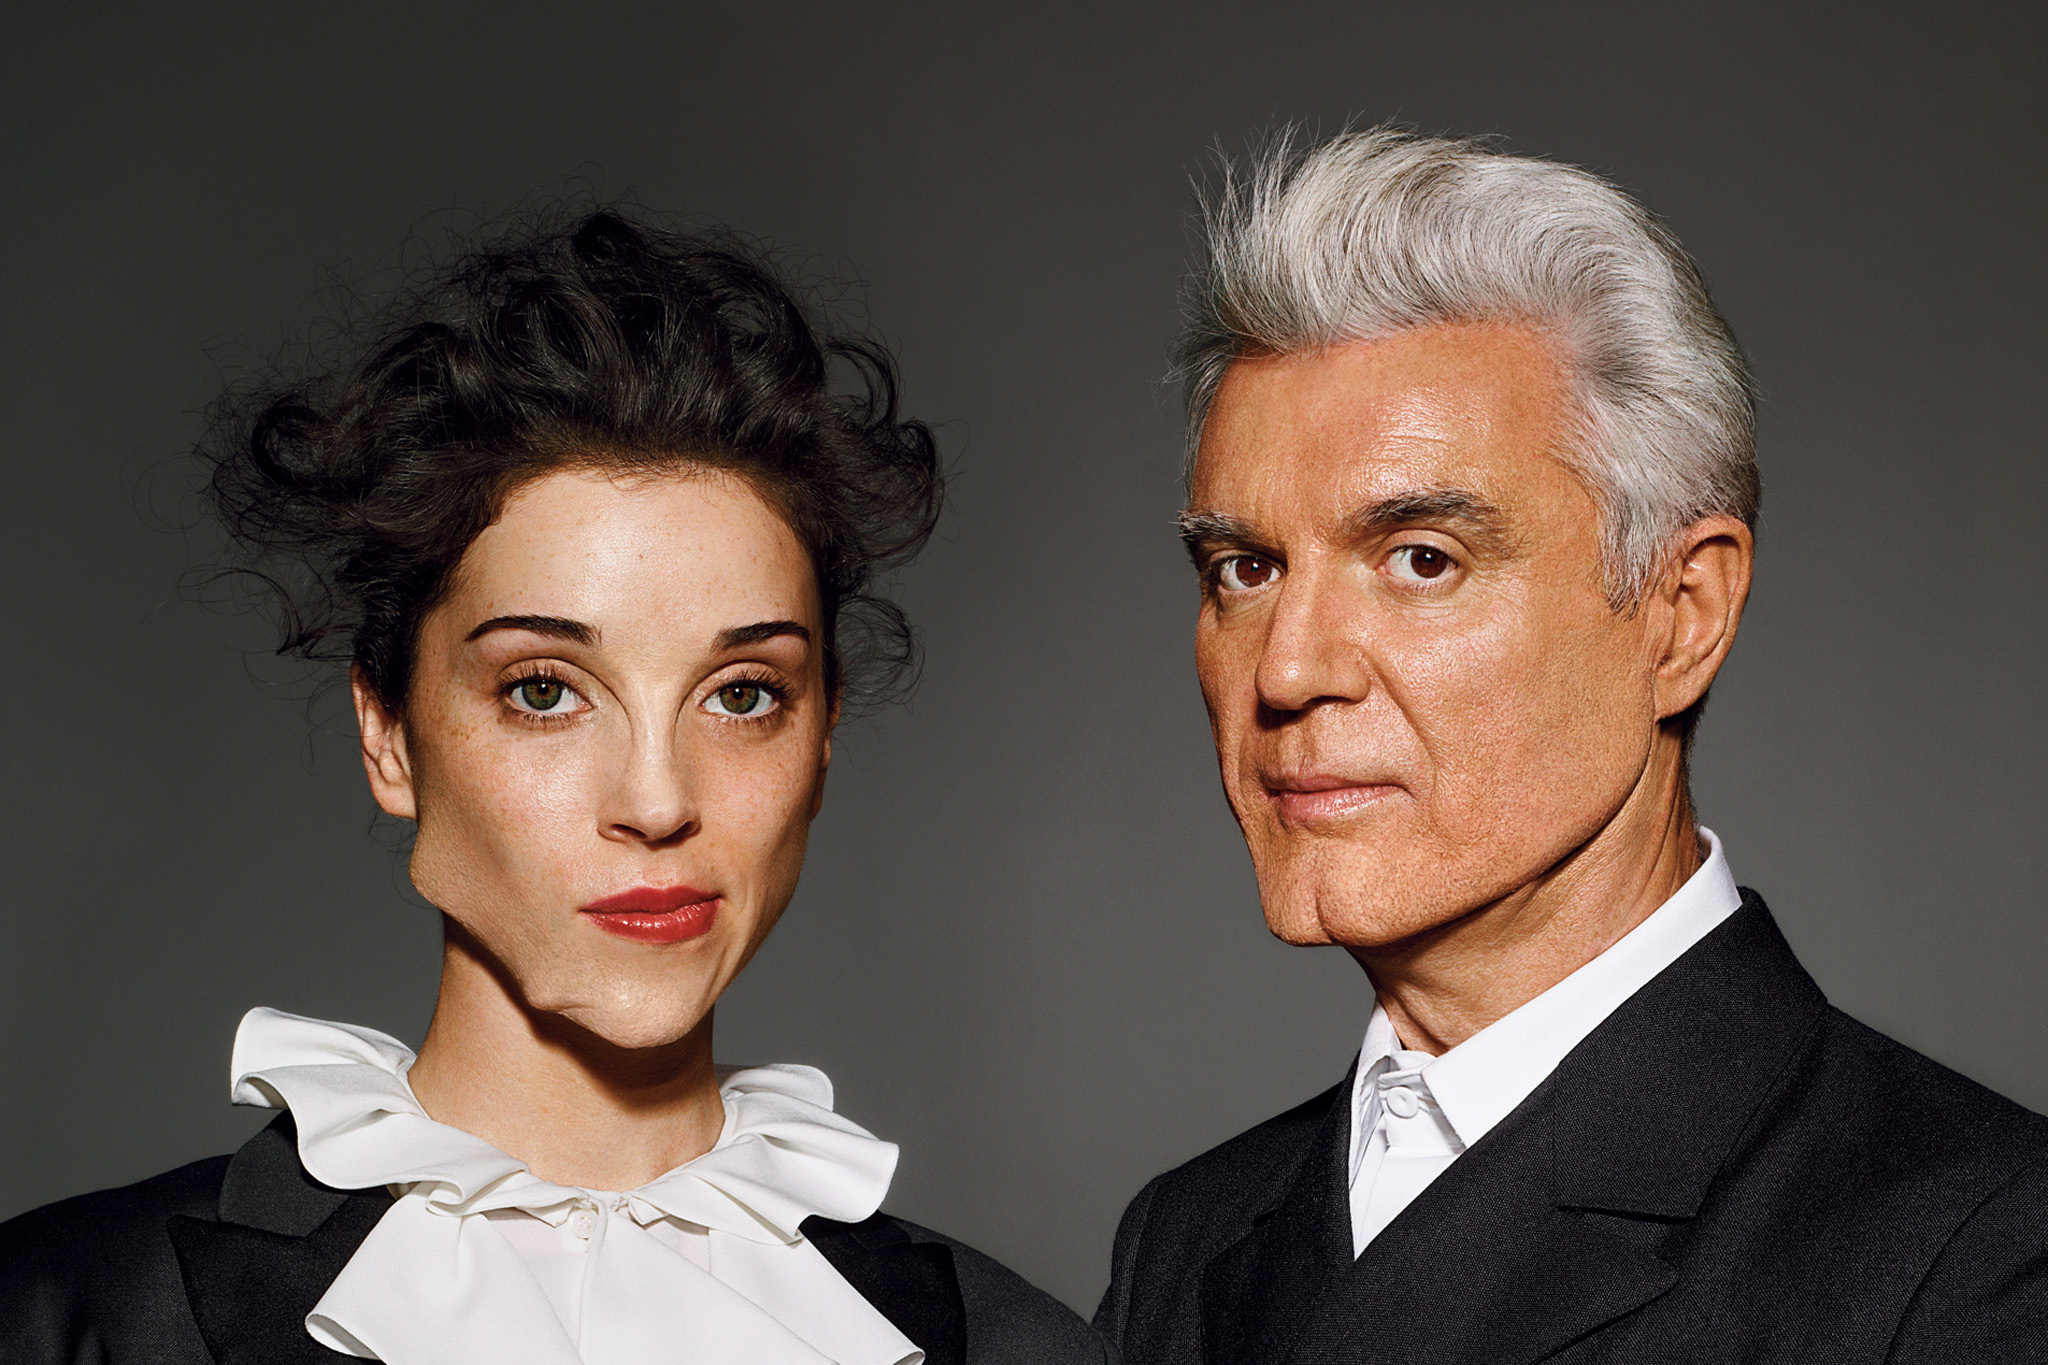 David Byrne and St. Vincent perform at Williamsburg Park, one of Time Out's 101 things to do in New York City in the fall